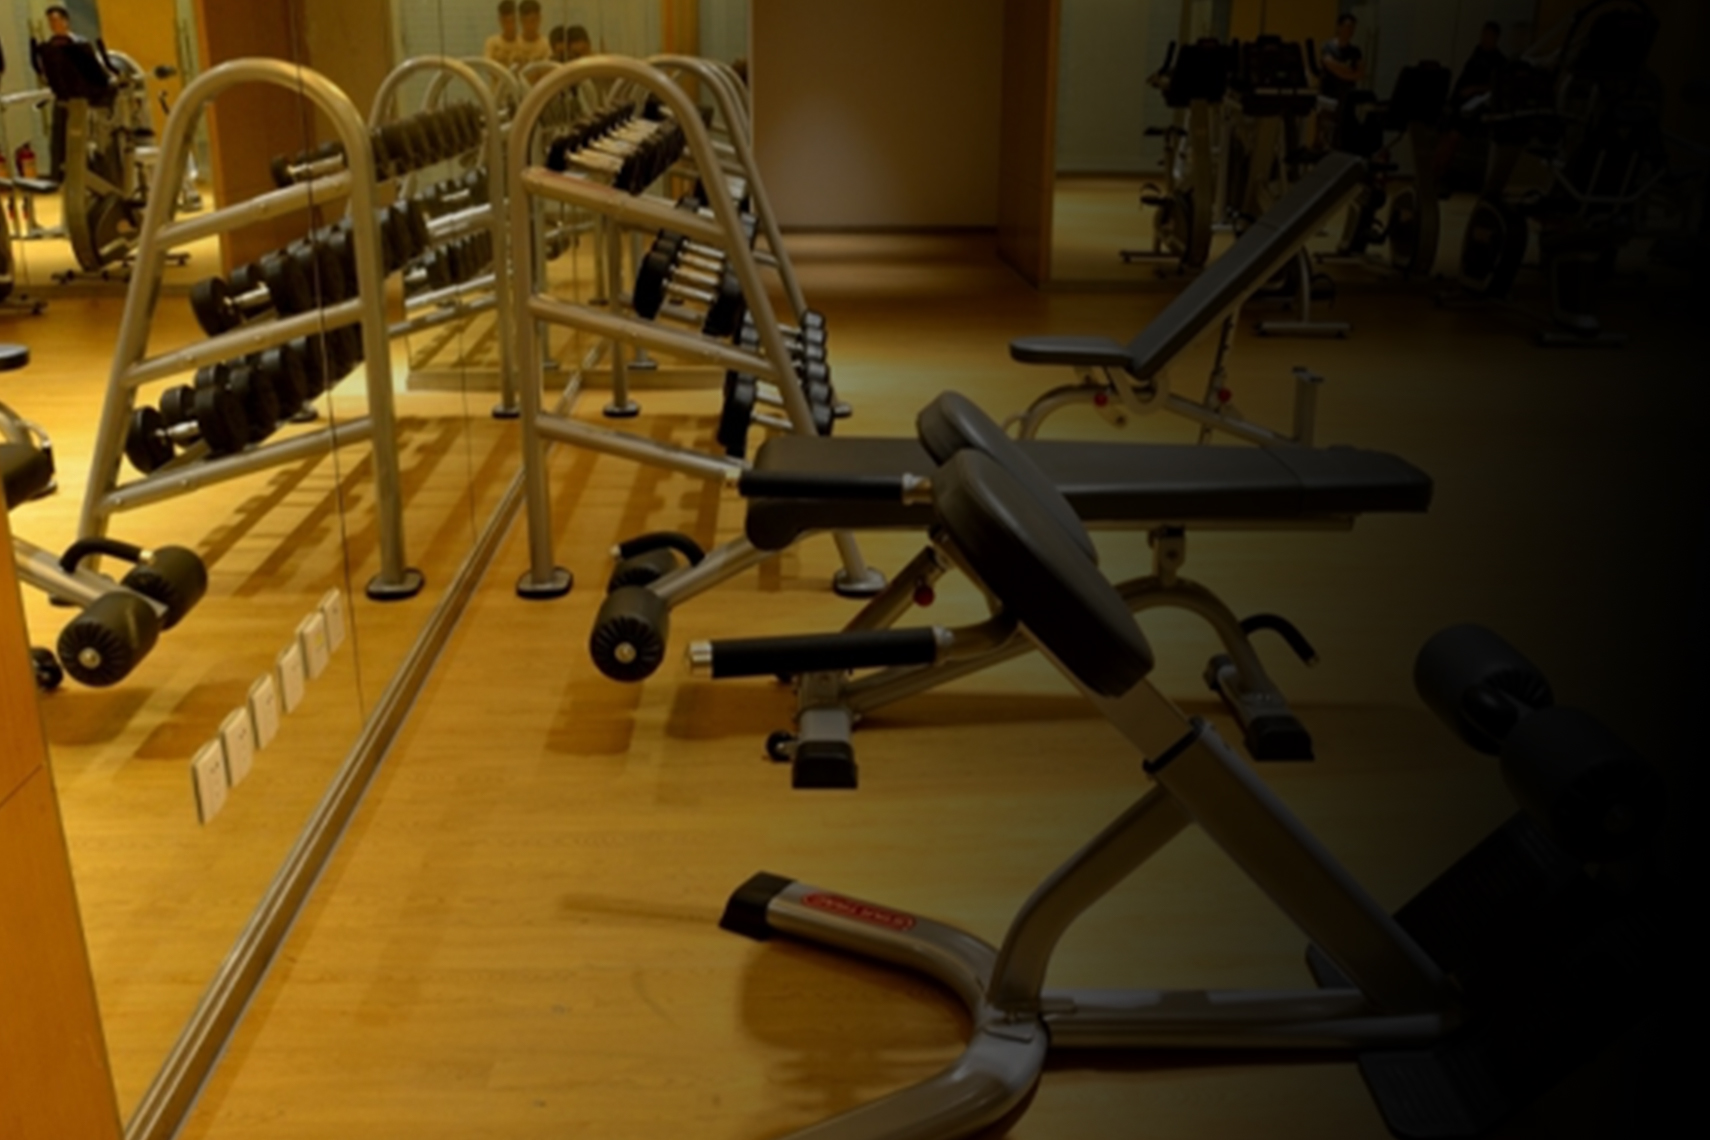 Citic corporate gym